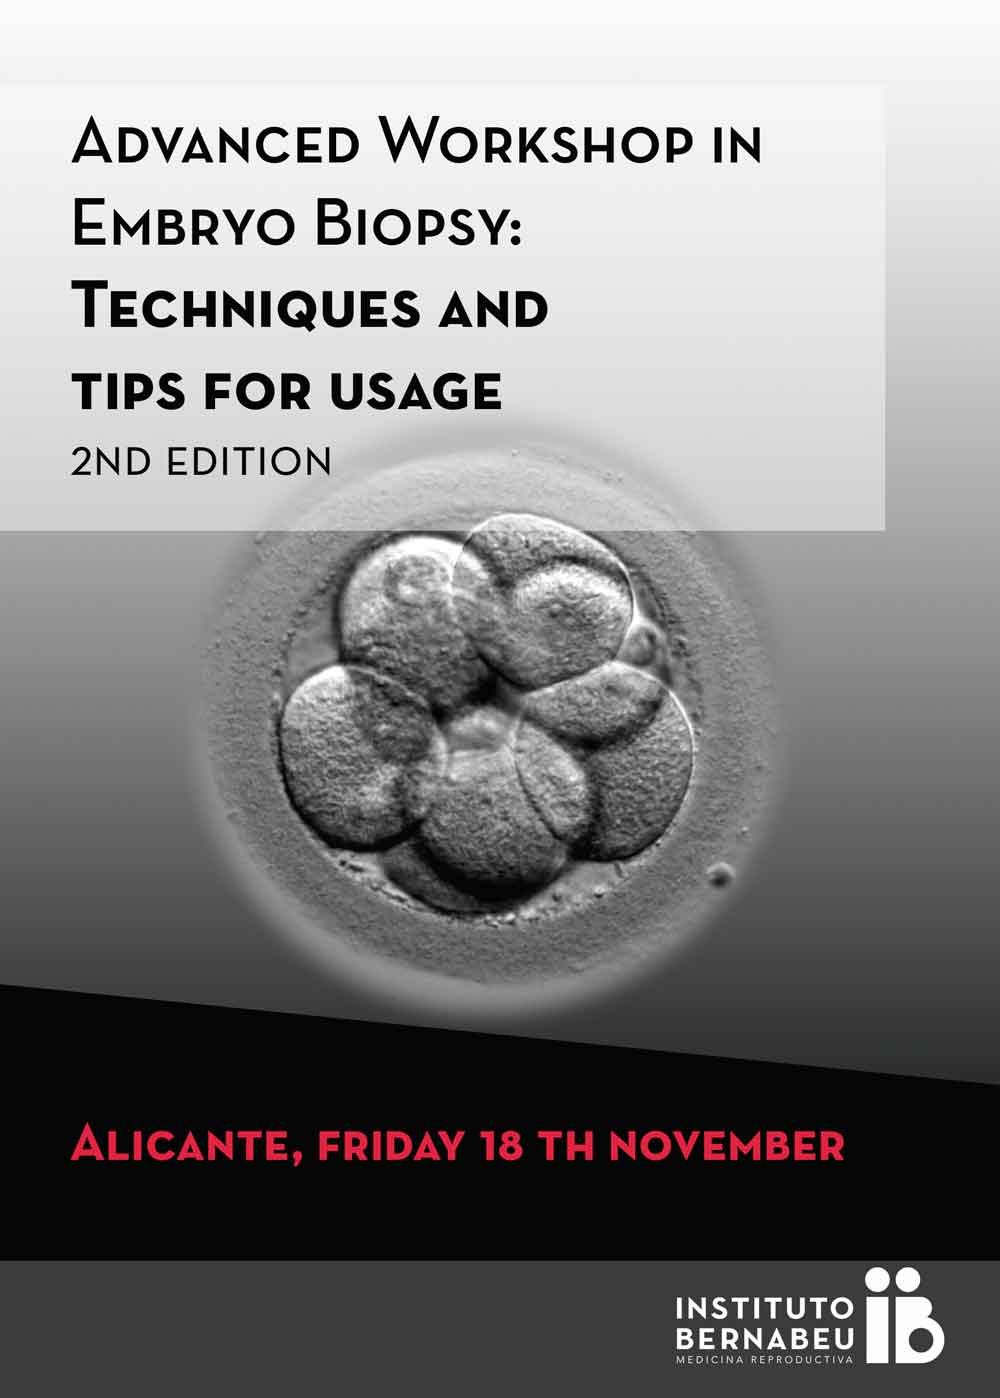 Instituto Bernabeu Workshop in embryo biopsy